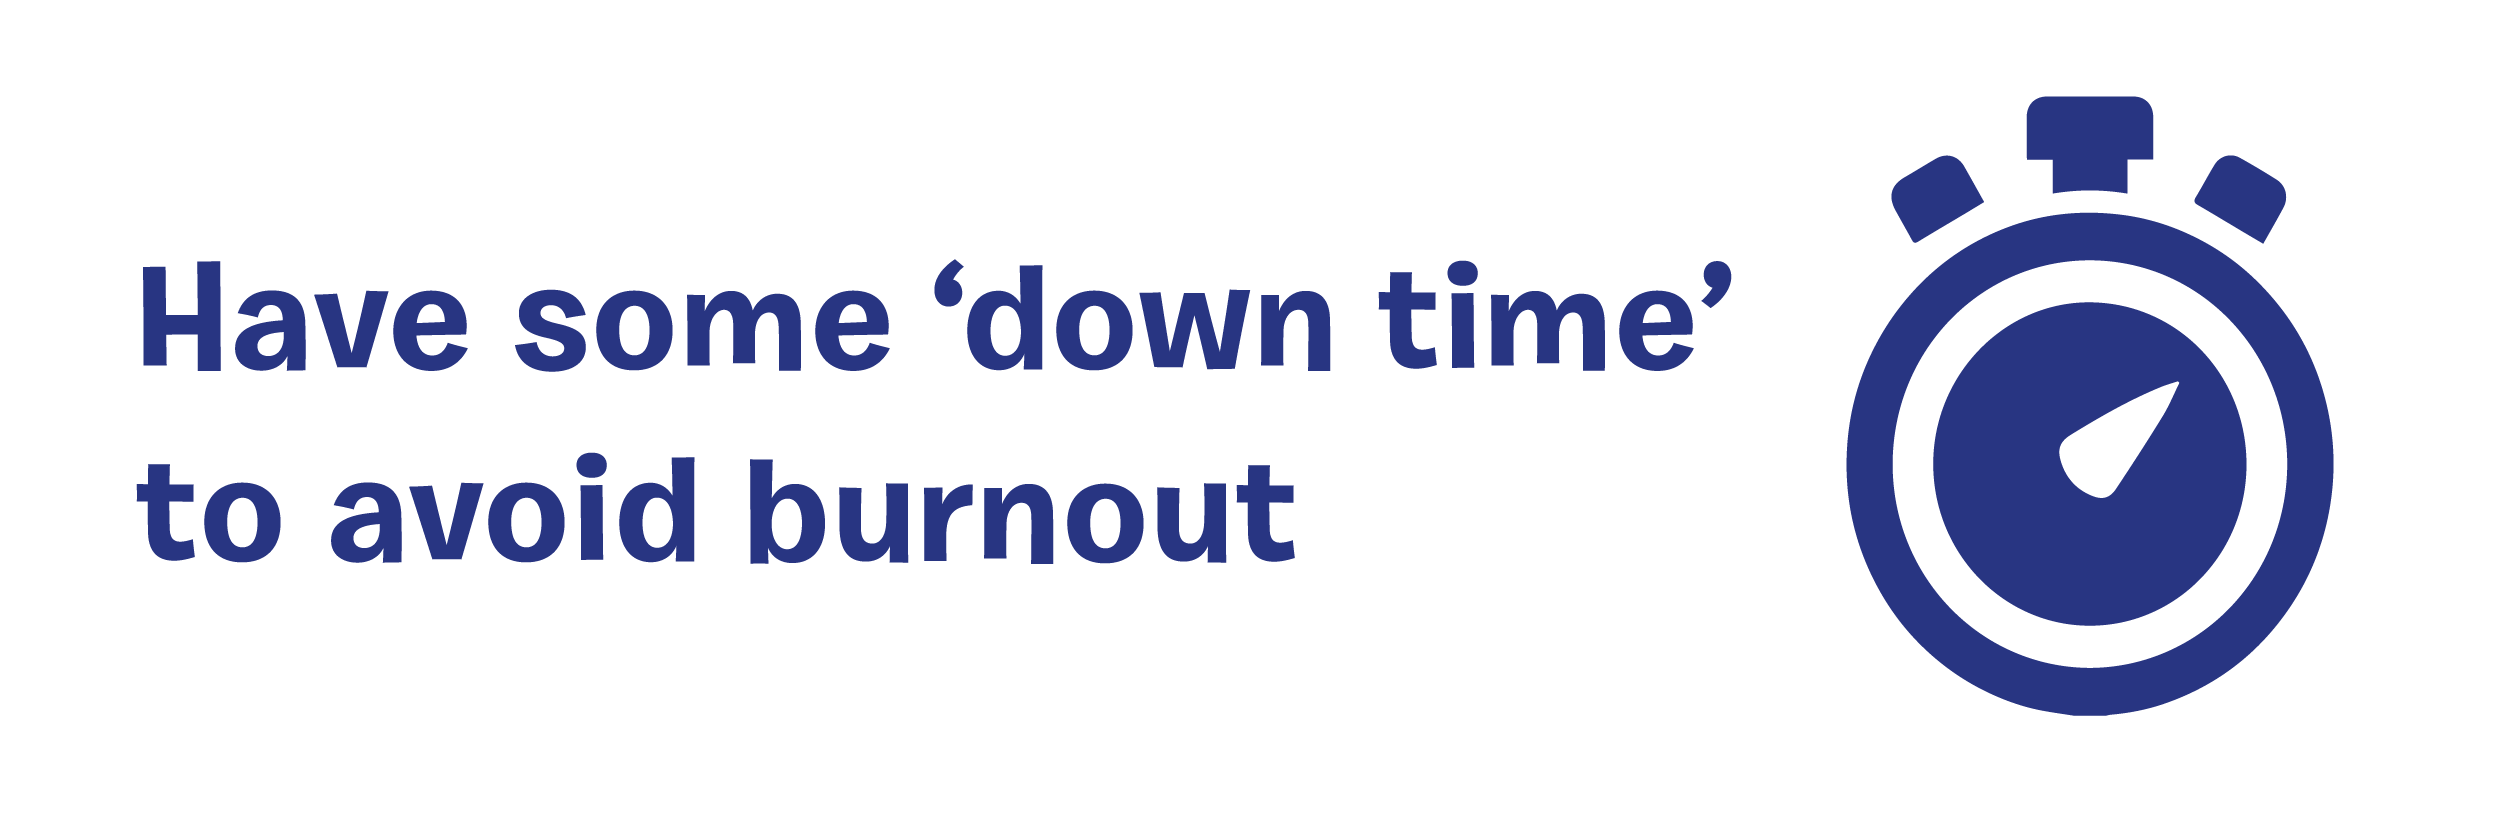 Have some 'down time' to avoid burnout